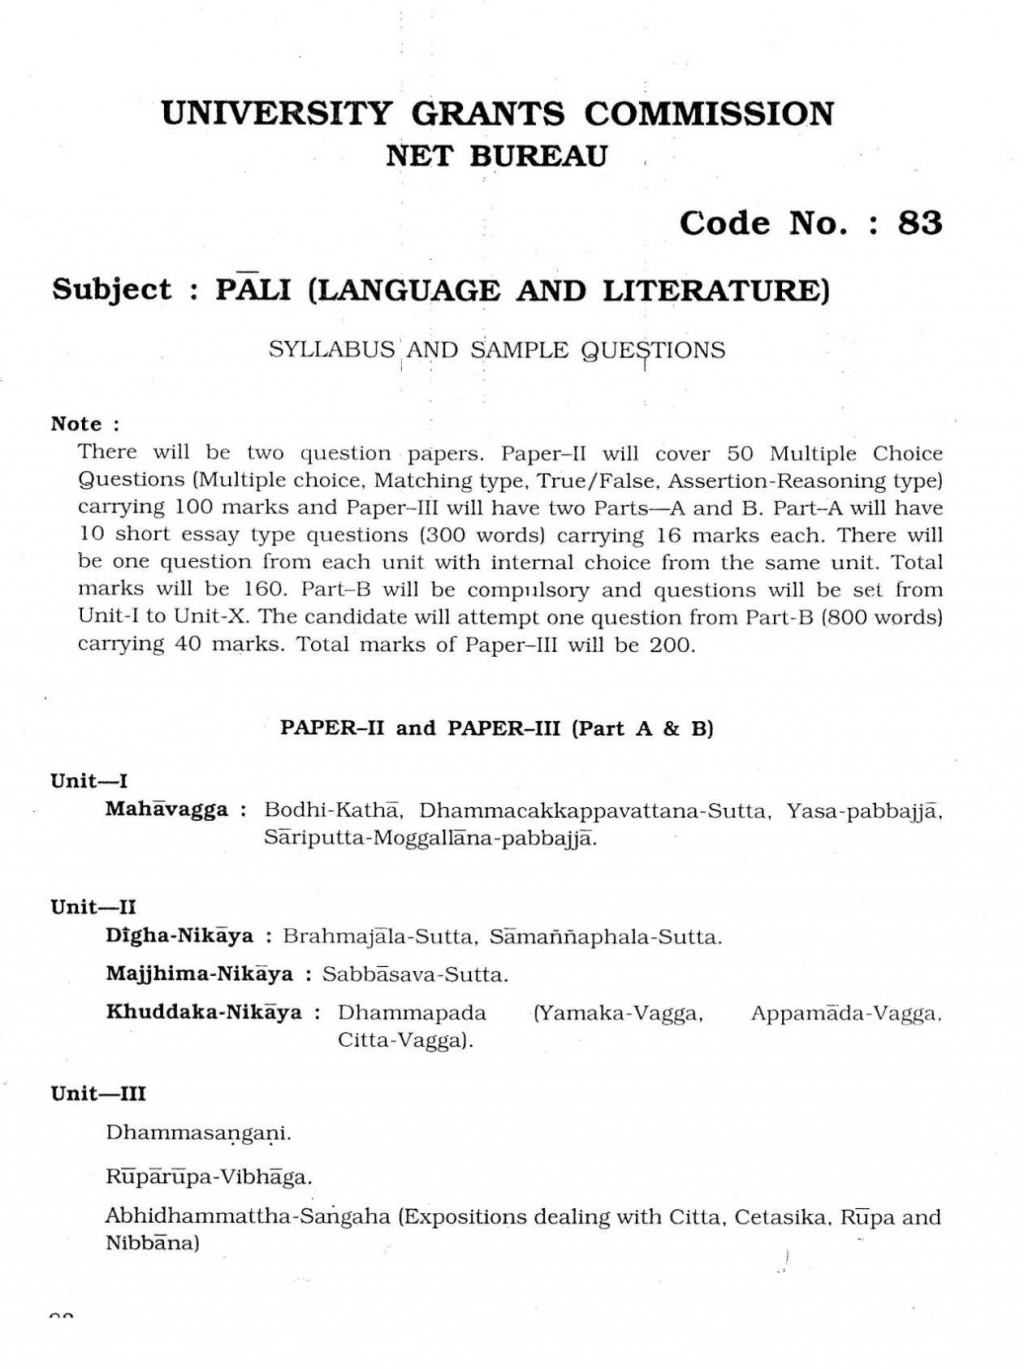 016 Essay Example Teenage Pregnancy Ugc National Eligibility Test Pali Syllabus Astounding Introduction In The Philippines Tagalog Argumentative About Body Large